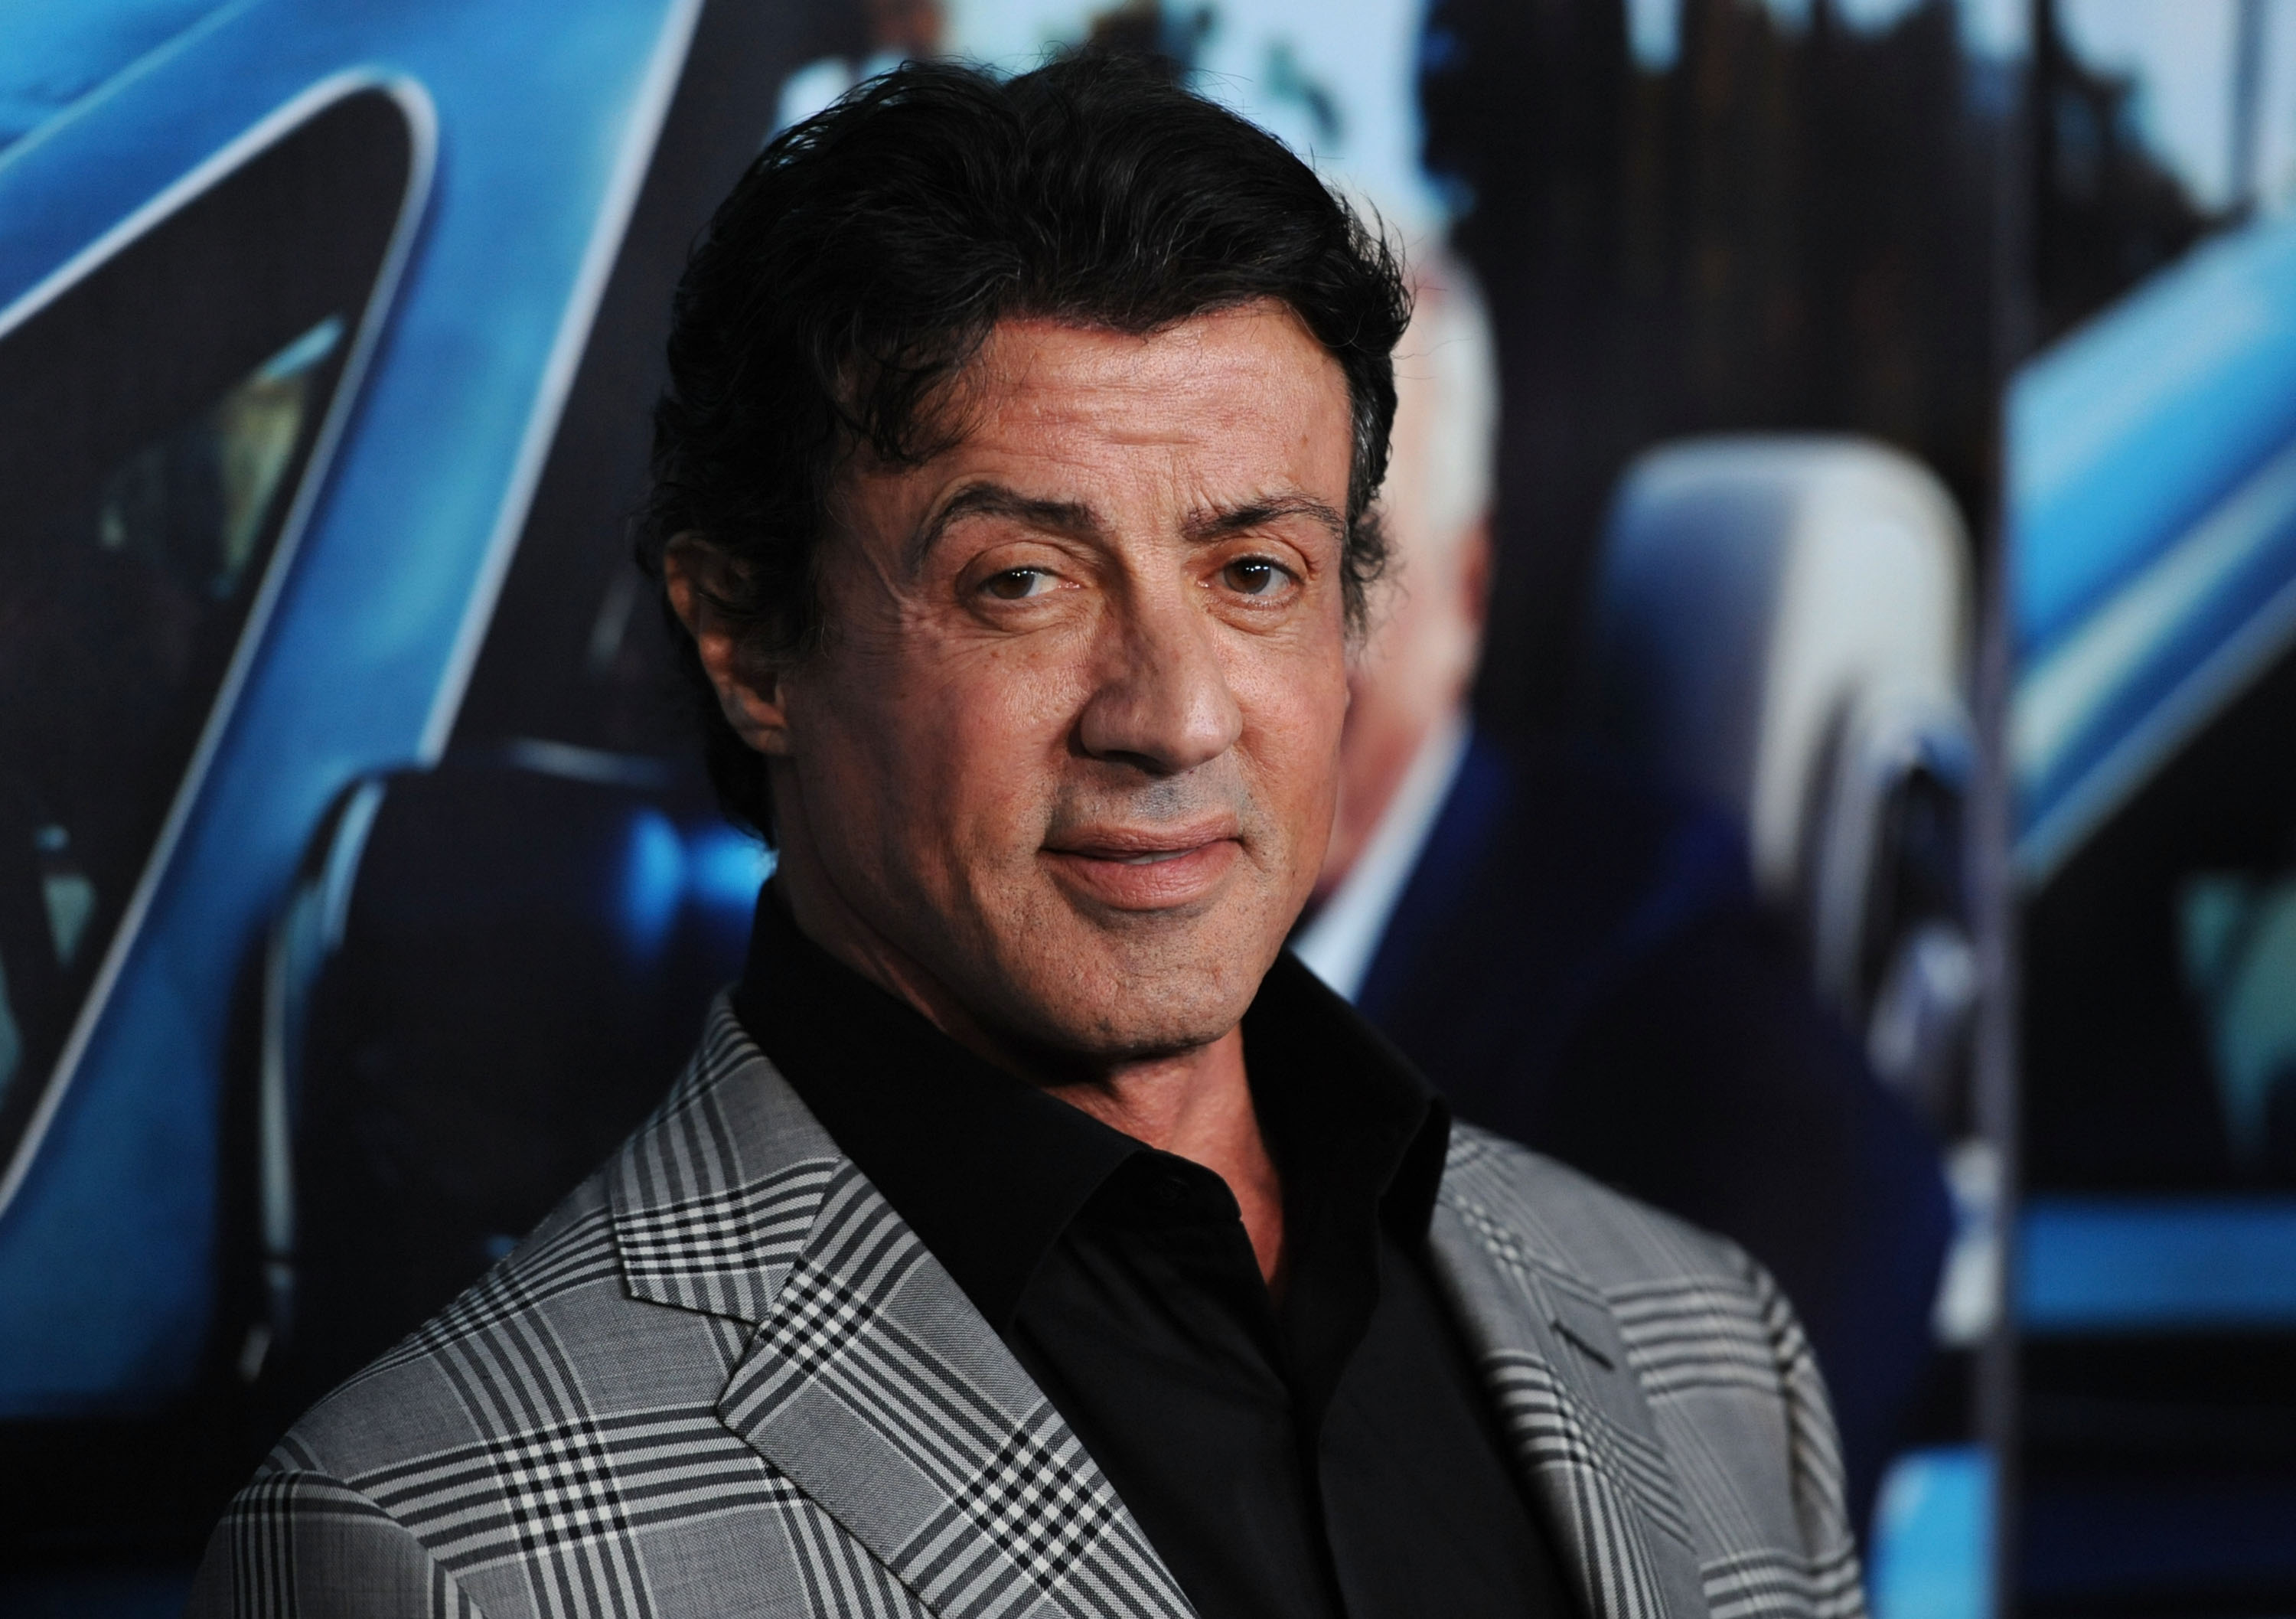 Sylvester Stallone (Source: Getty Images)